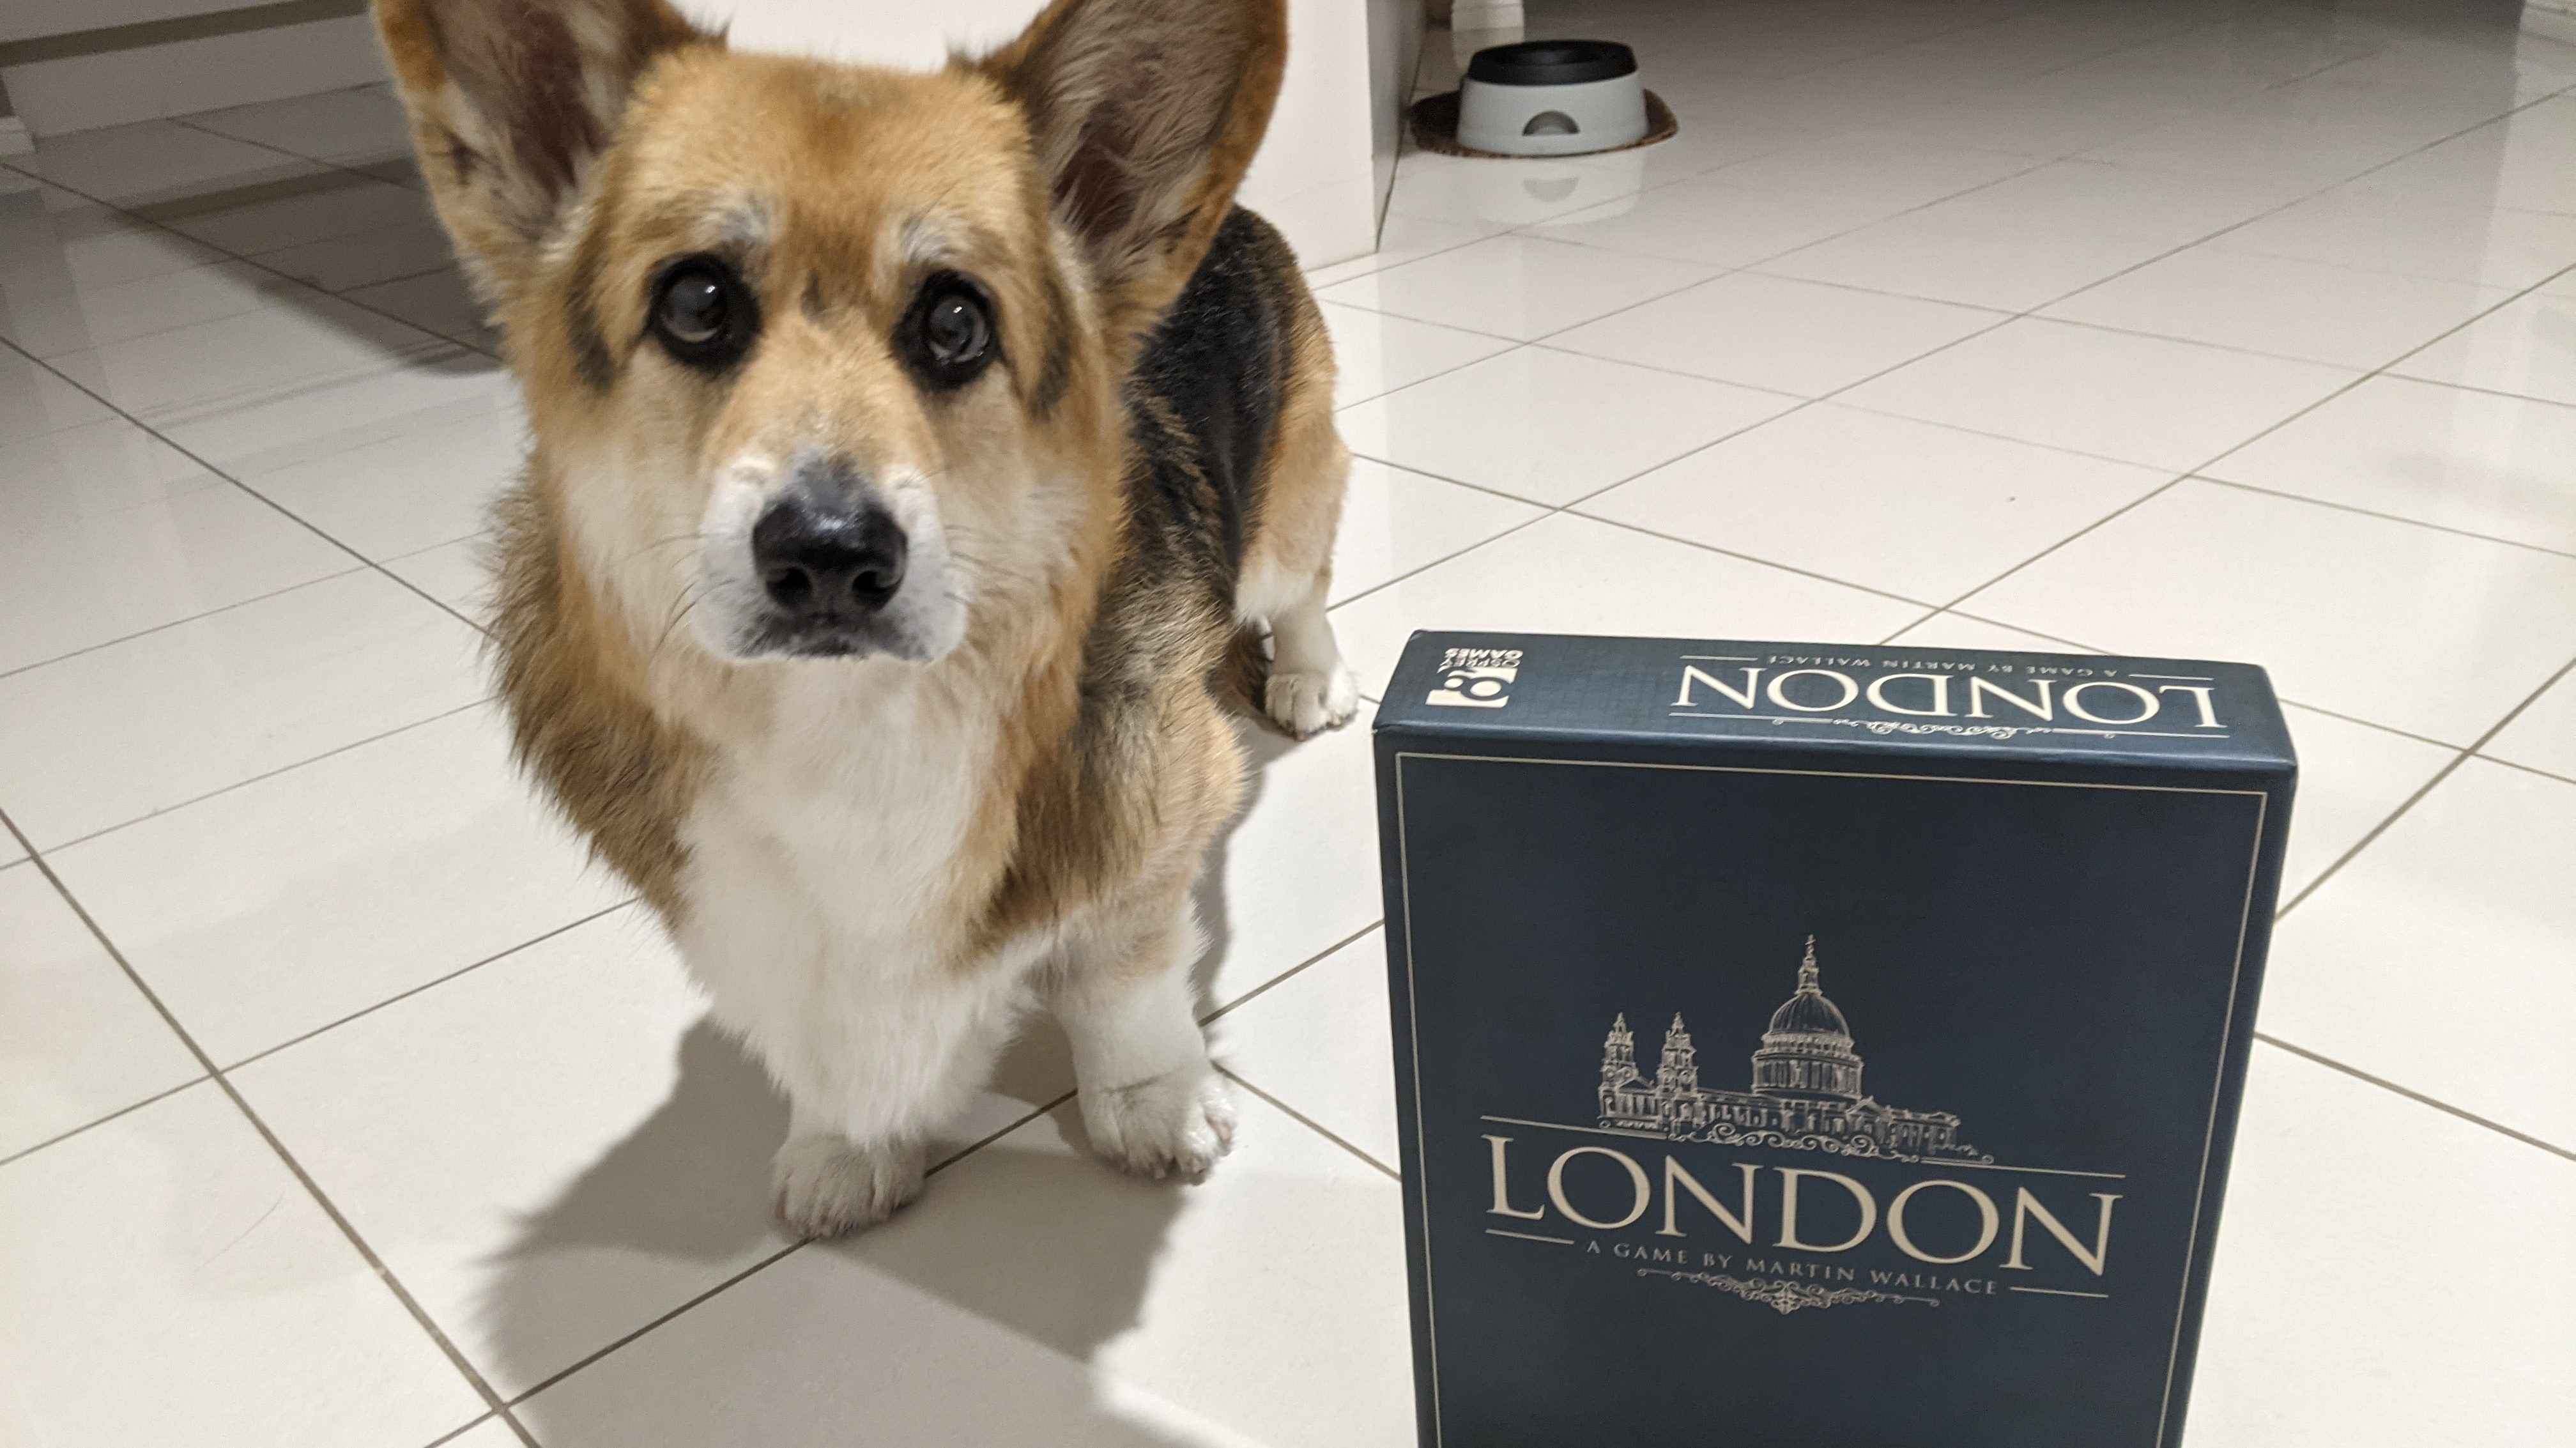 Chester the corgi standing beside a copy of the board game London.